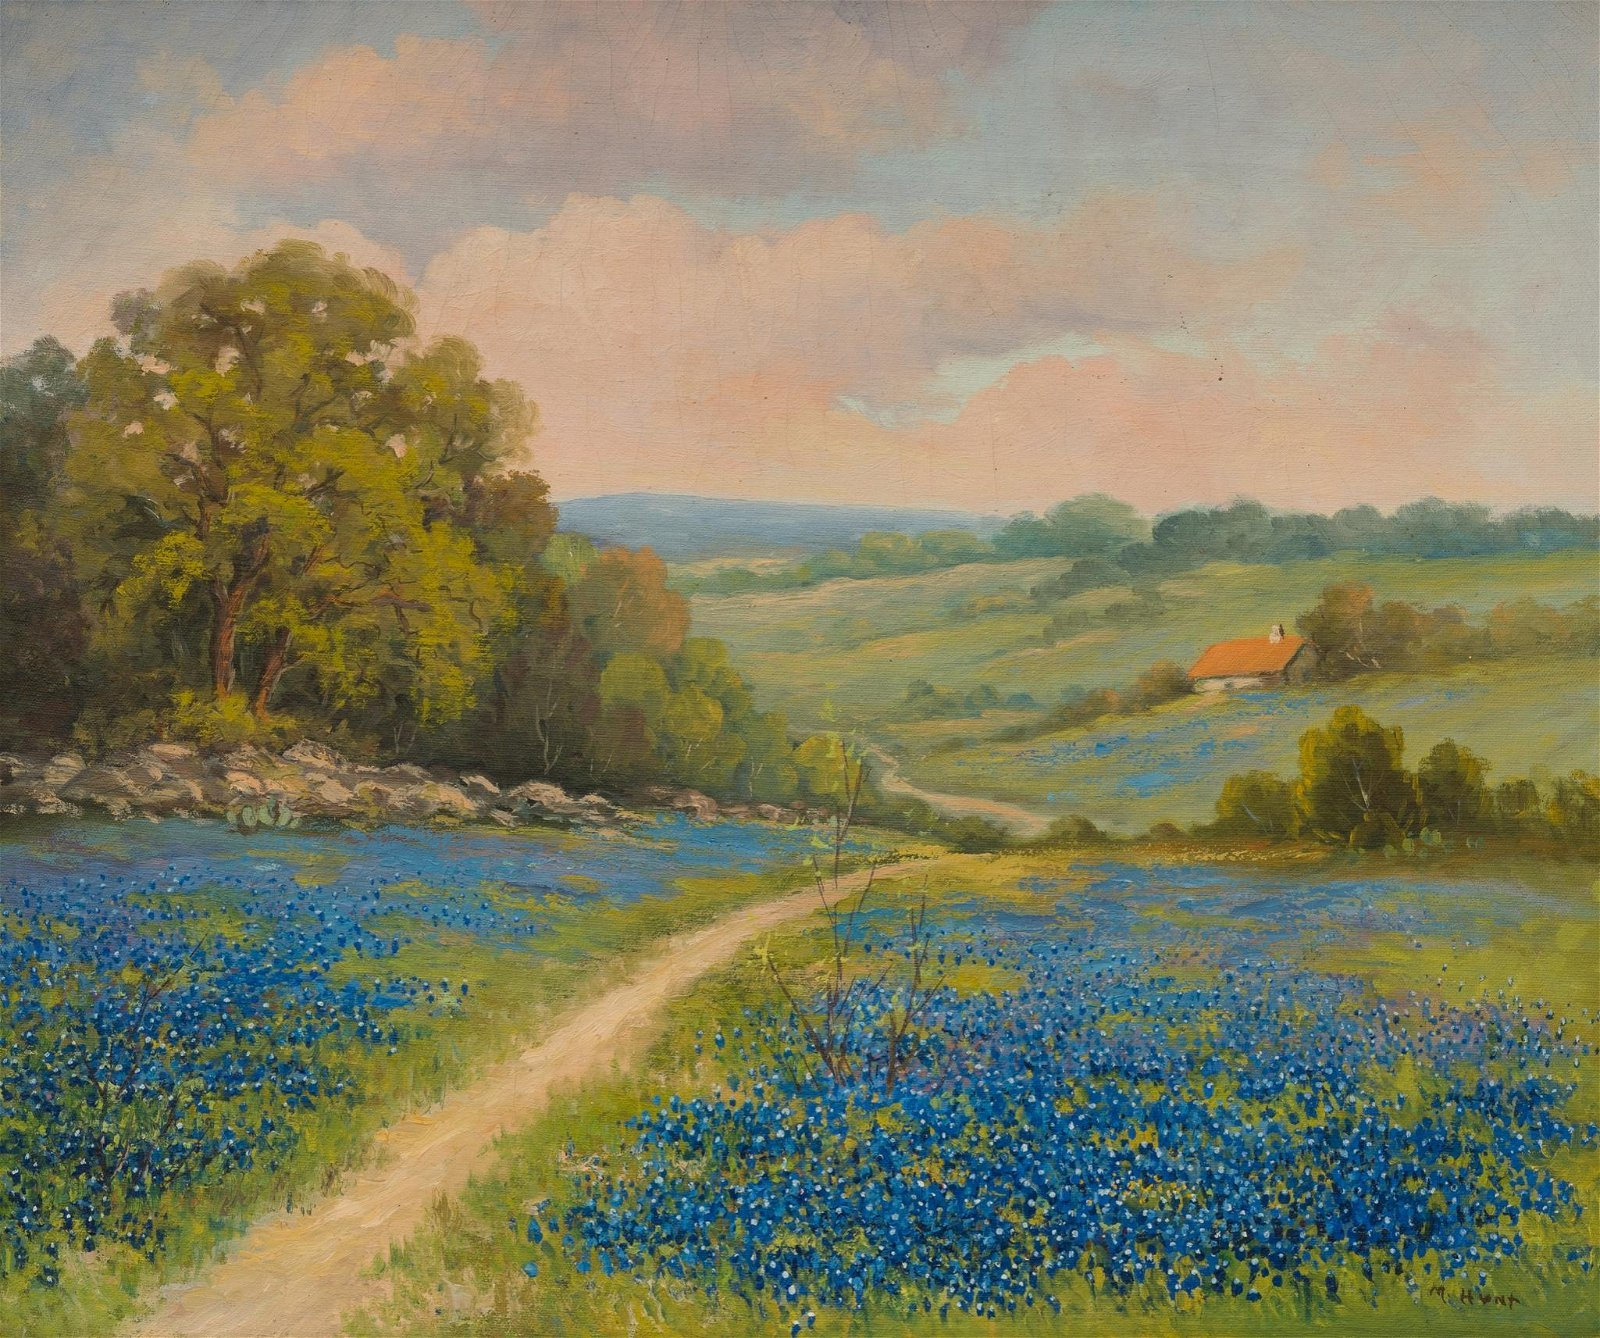 M. Hunt, Early Texas Bluebonnets, oil on canvas